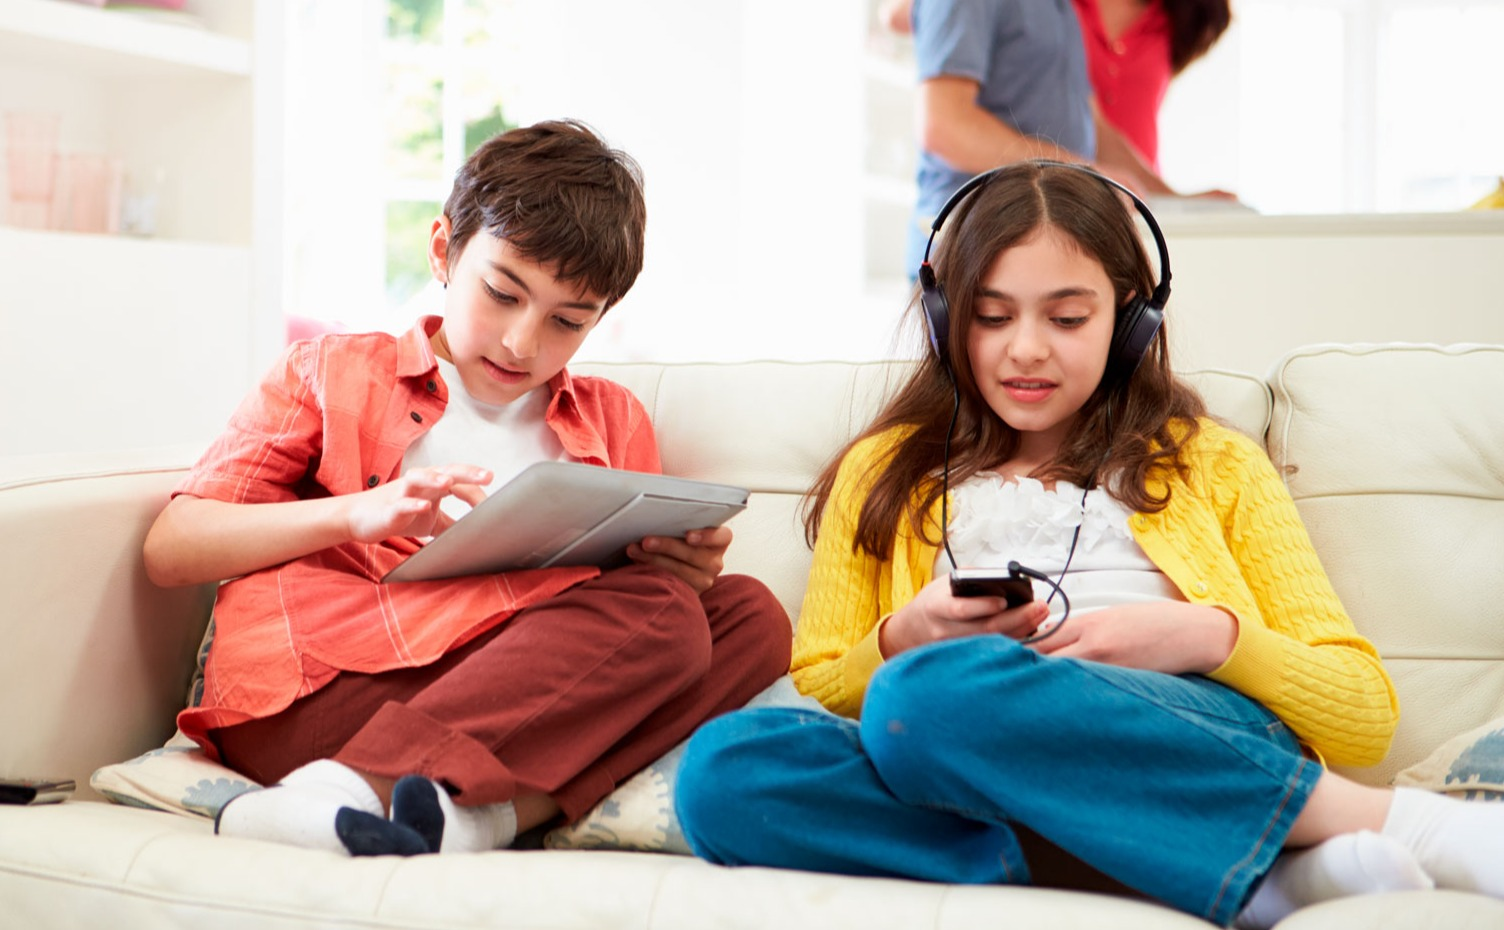 teen_kids_using_devices_on_couch_extended_2-1